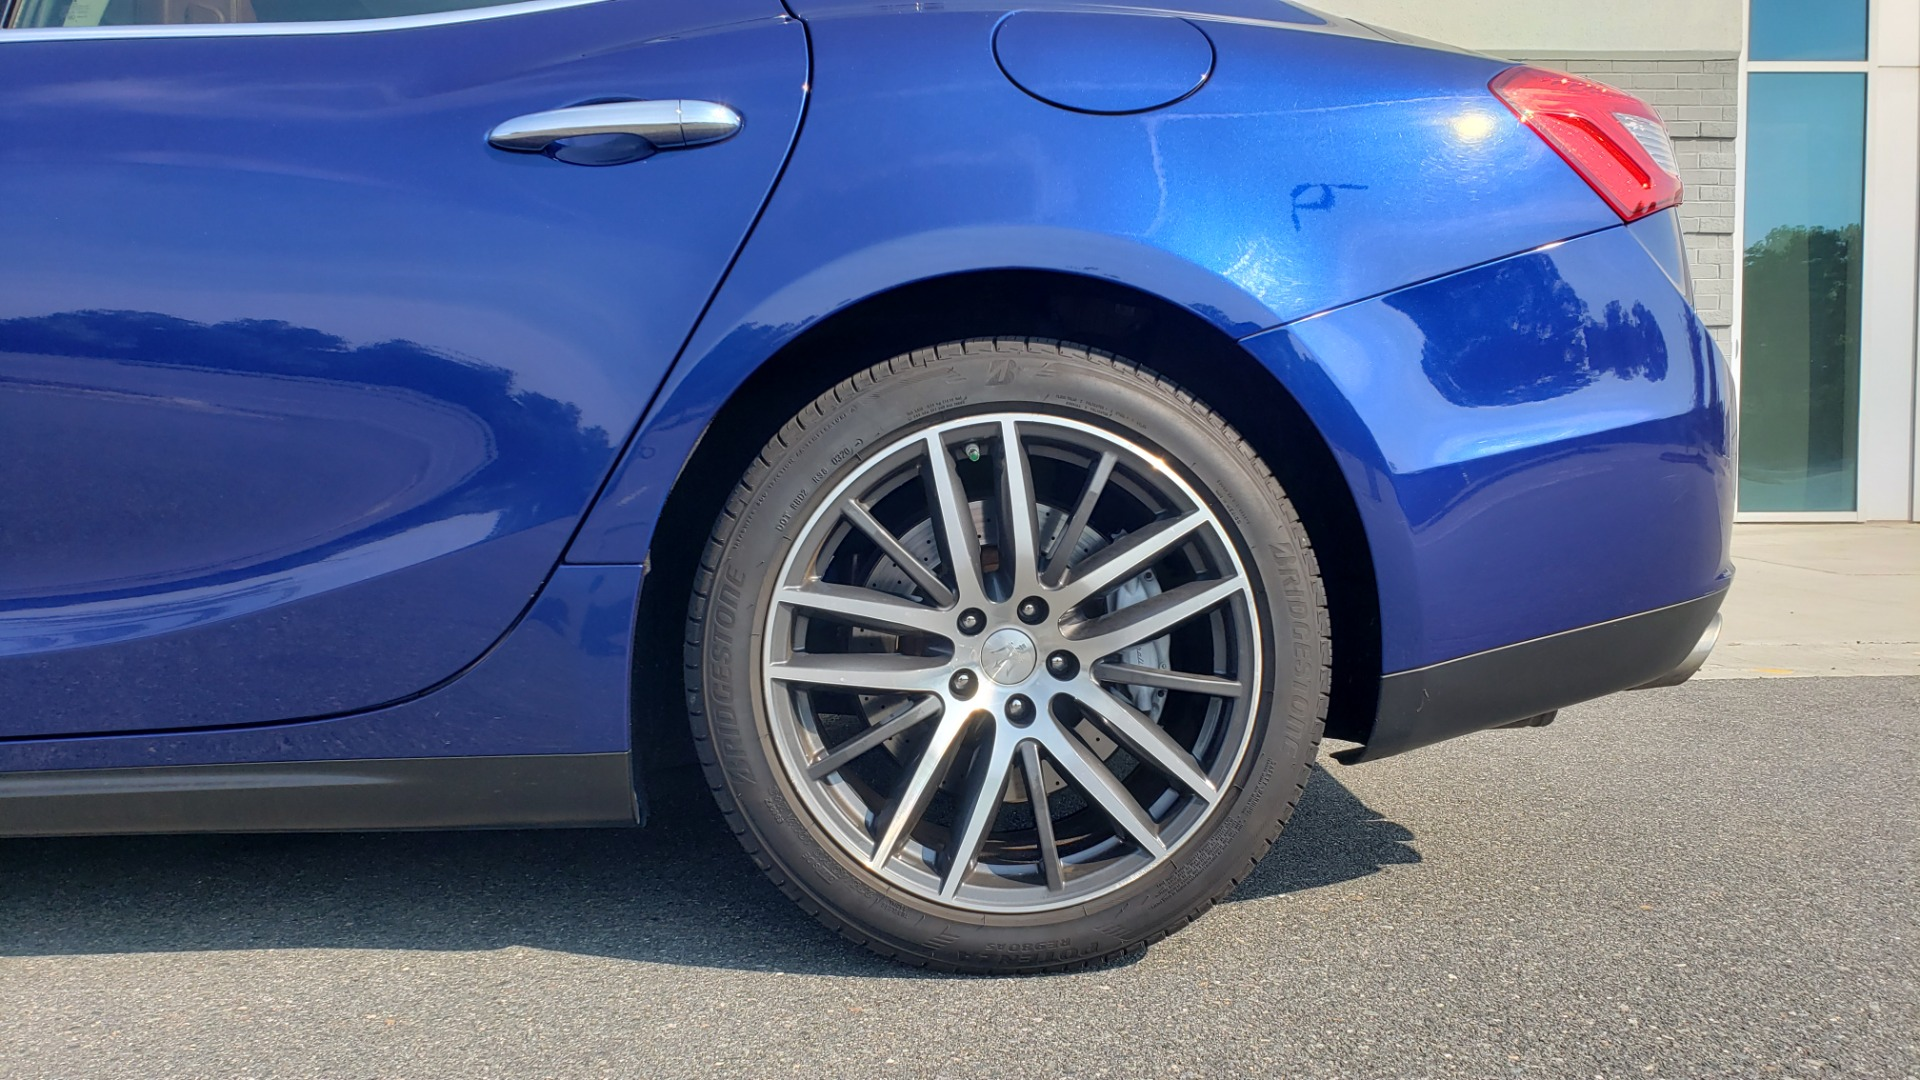 Used 2015 Maserati GHIBLI SEDAN / 3.0L V6 / 8-SPD AUTO / NAV / HTD STS / SUNROOF / REARVIEW for sale $24,495 at Formula Imports in Charlotte NC 28227 83